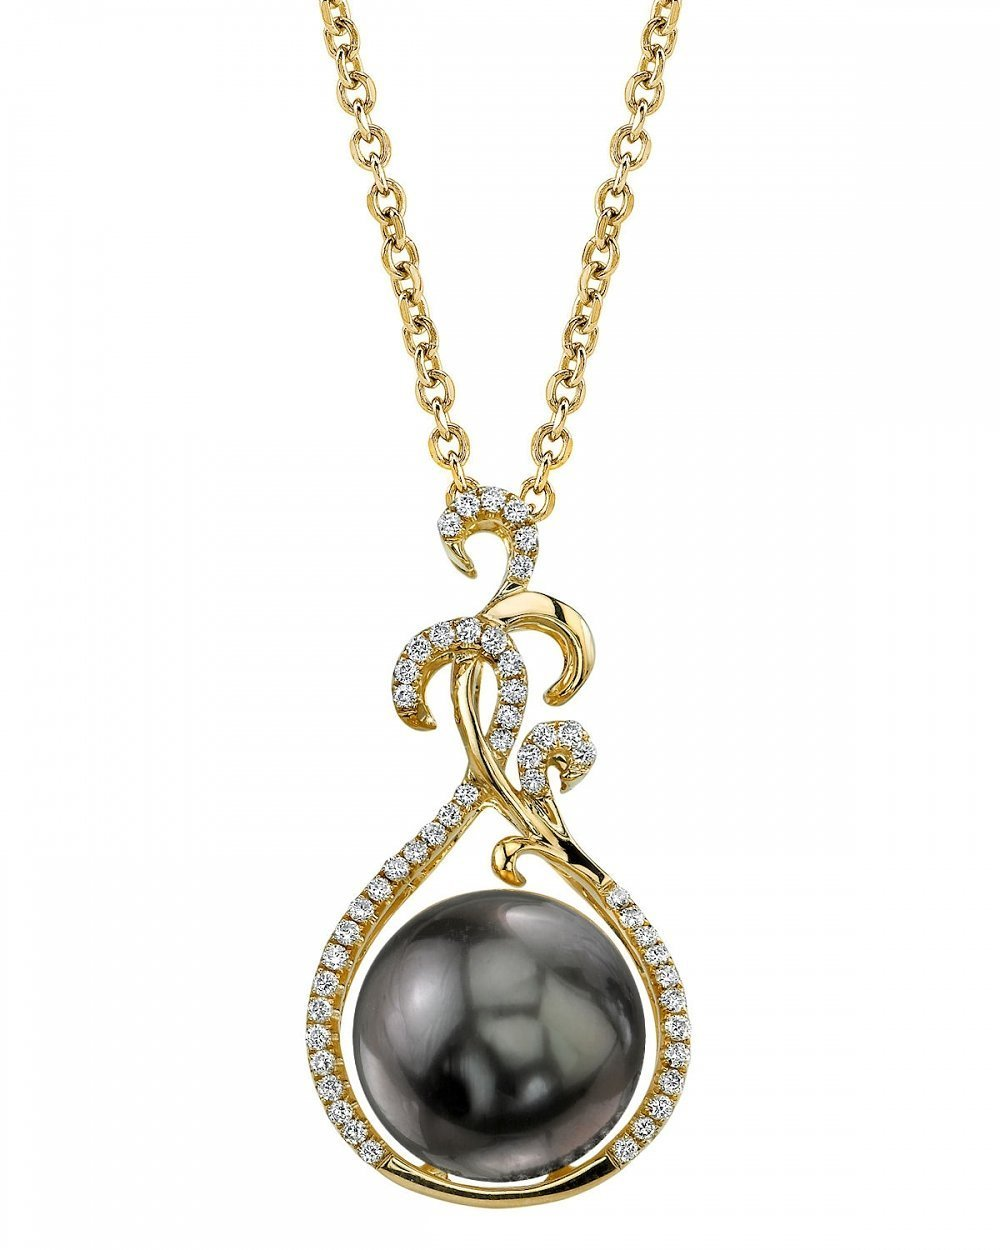 18K Gold Tahitian South Sea Cultured Pearl & Diamond Taylor Pendant Necklace